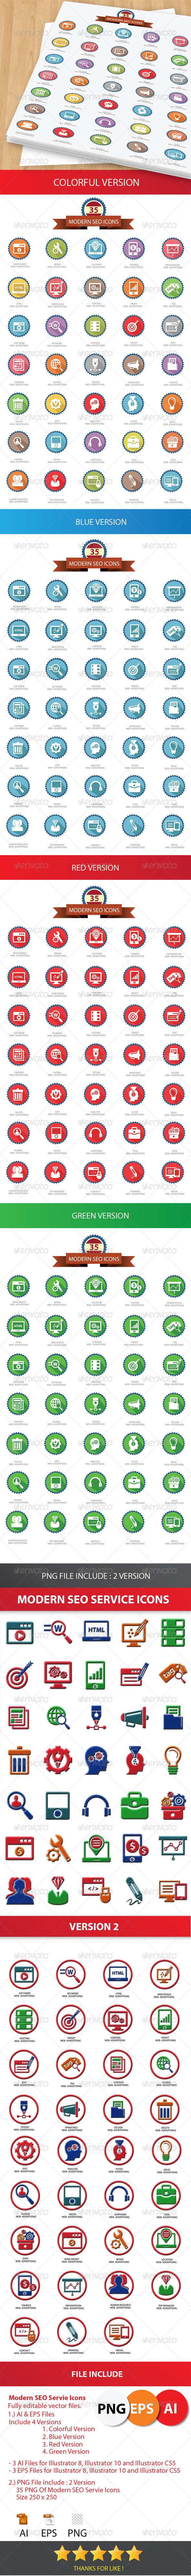 GraphicRiver 35 Modern SEO Icons 6020097